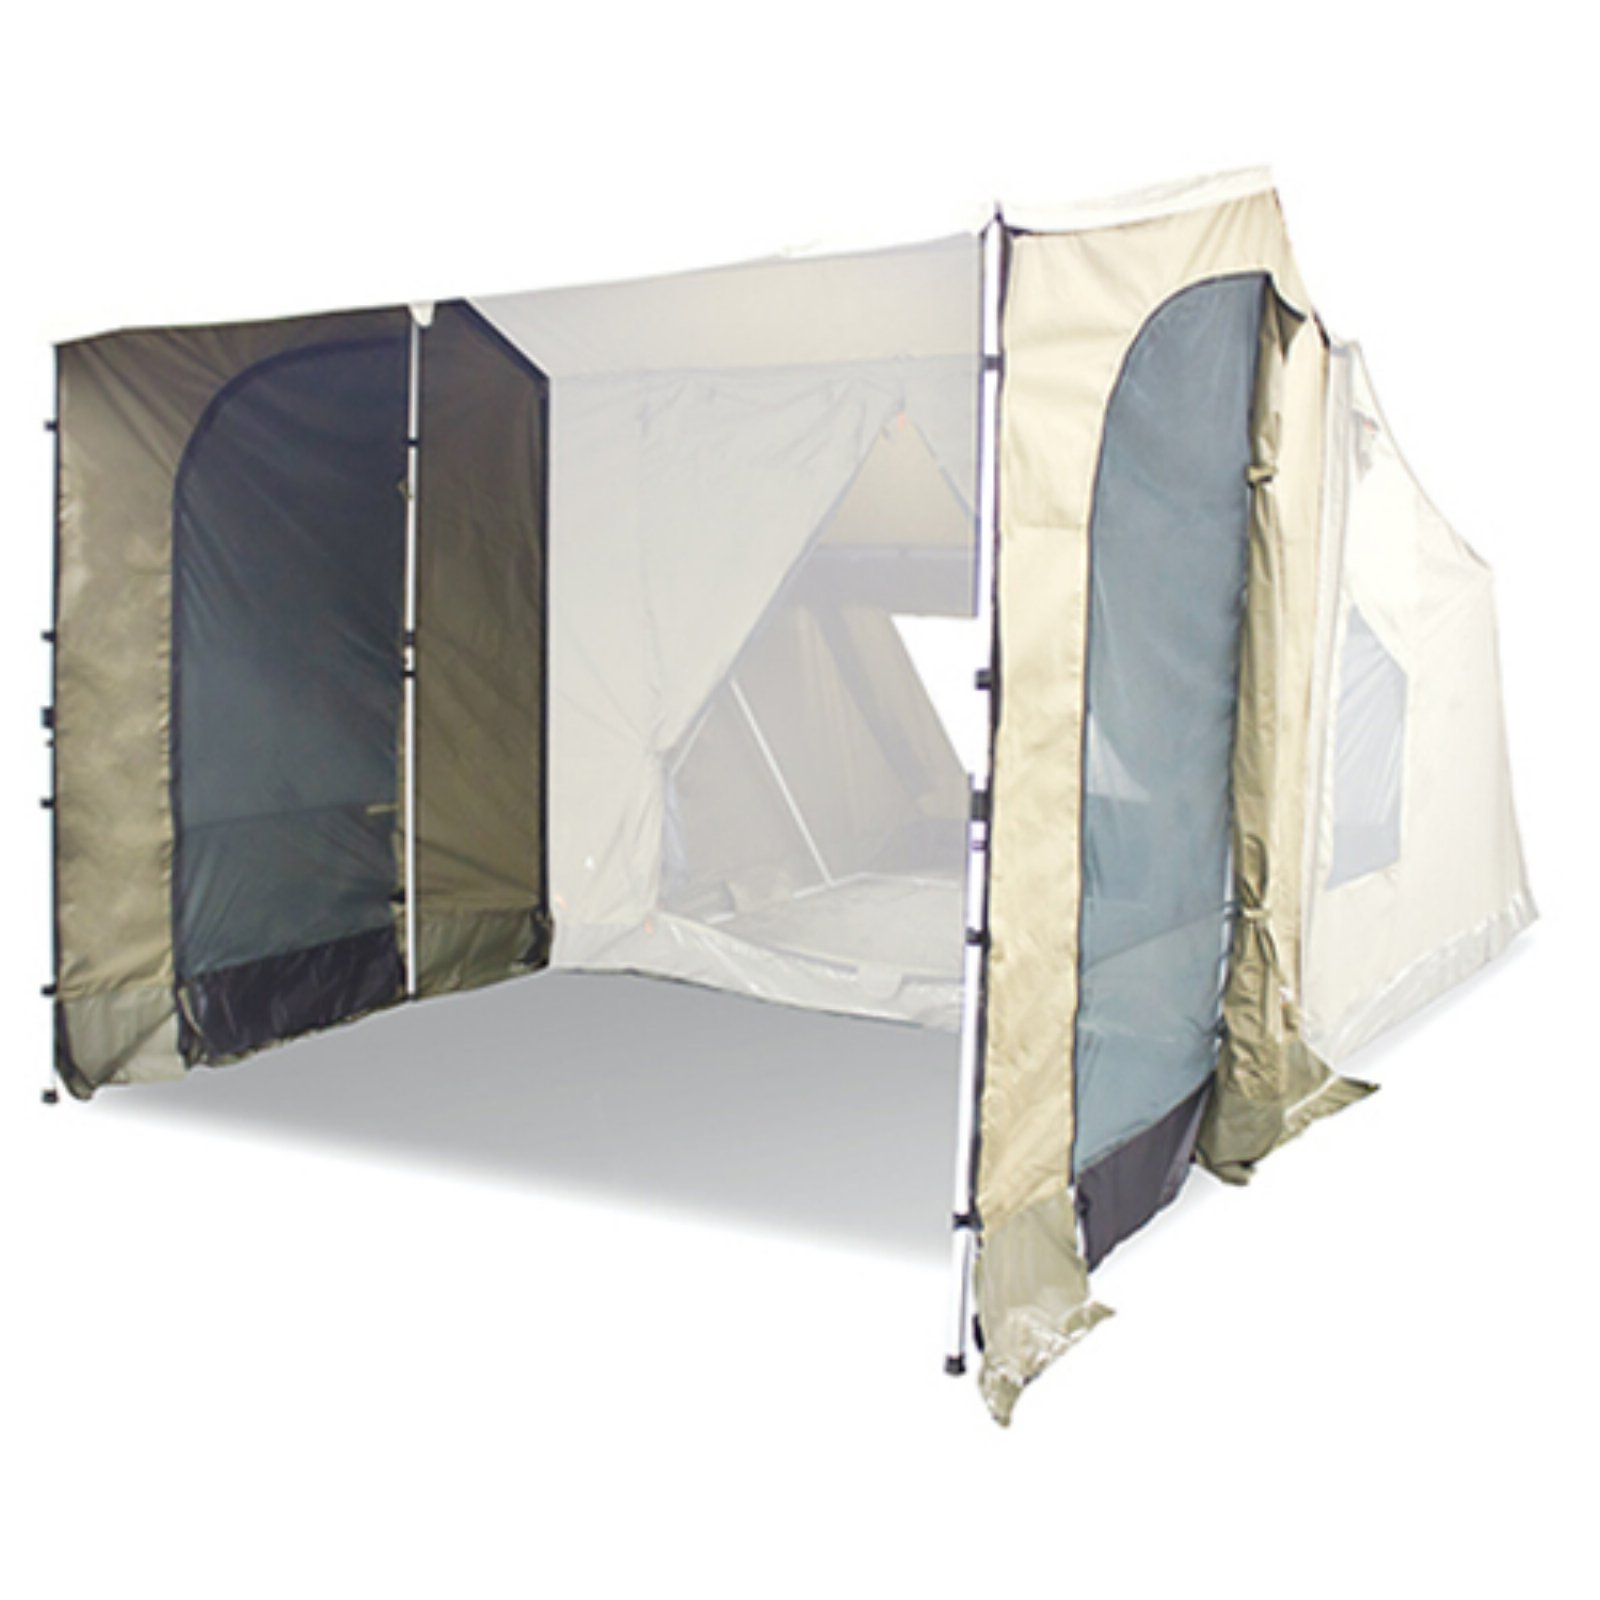 Oztent Deluxe Peaked Side Panels For Rv Model Tents Tent Tent Accessories Tent Awning